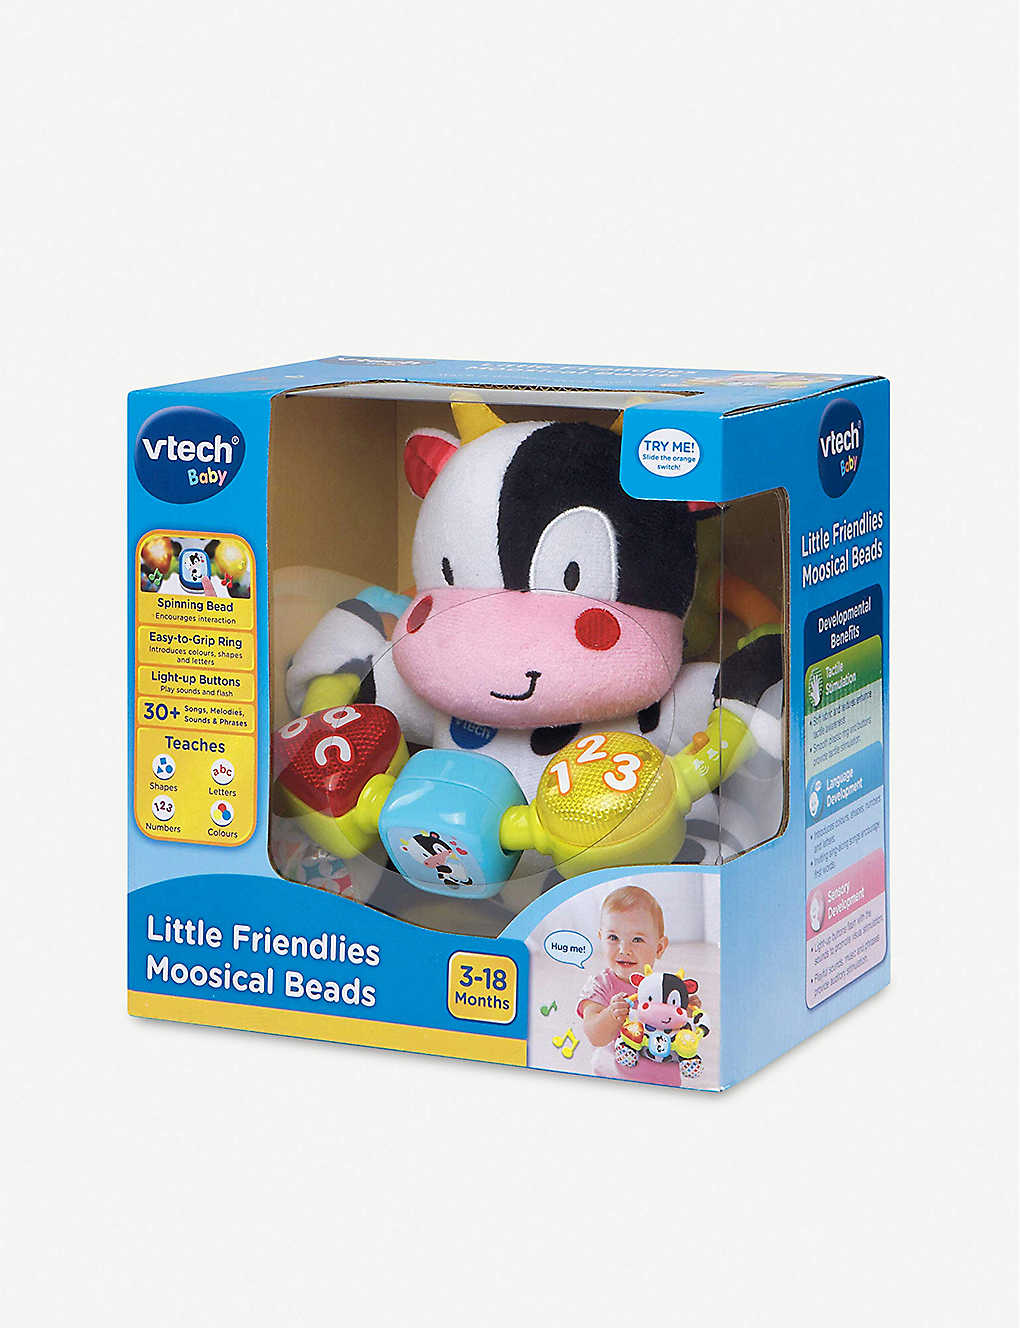 VTECH: Little friendlies mooscial beads